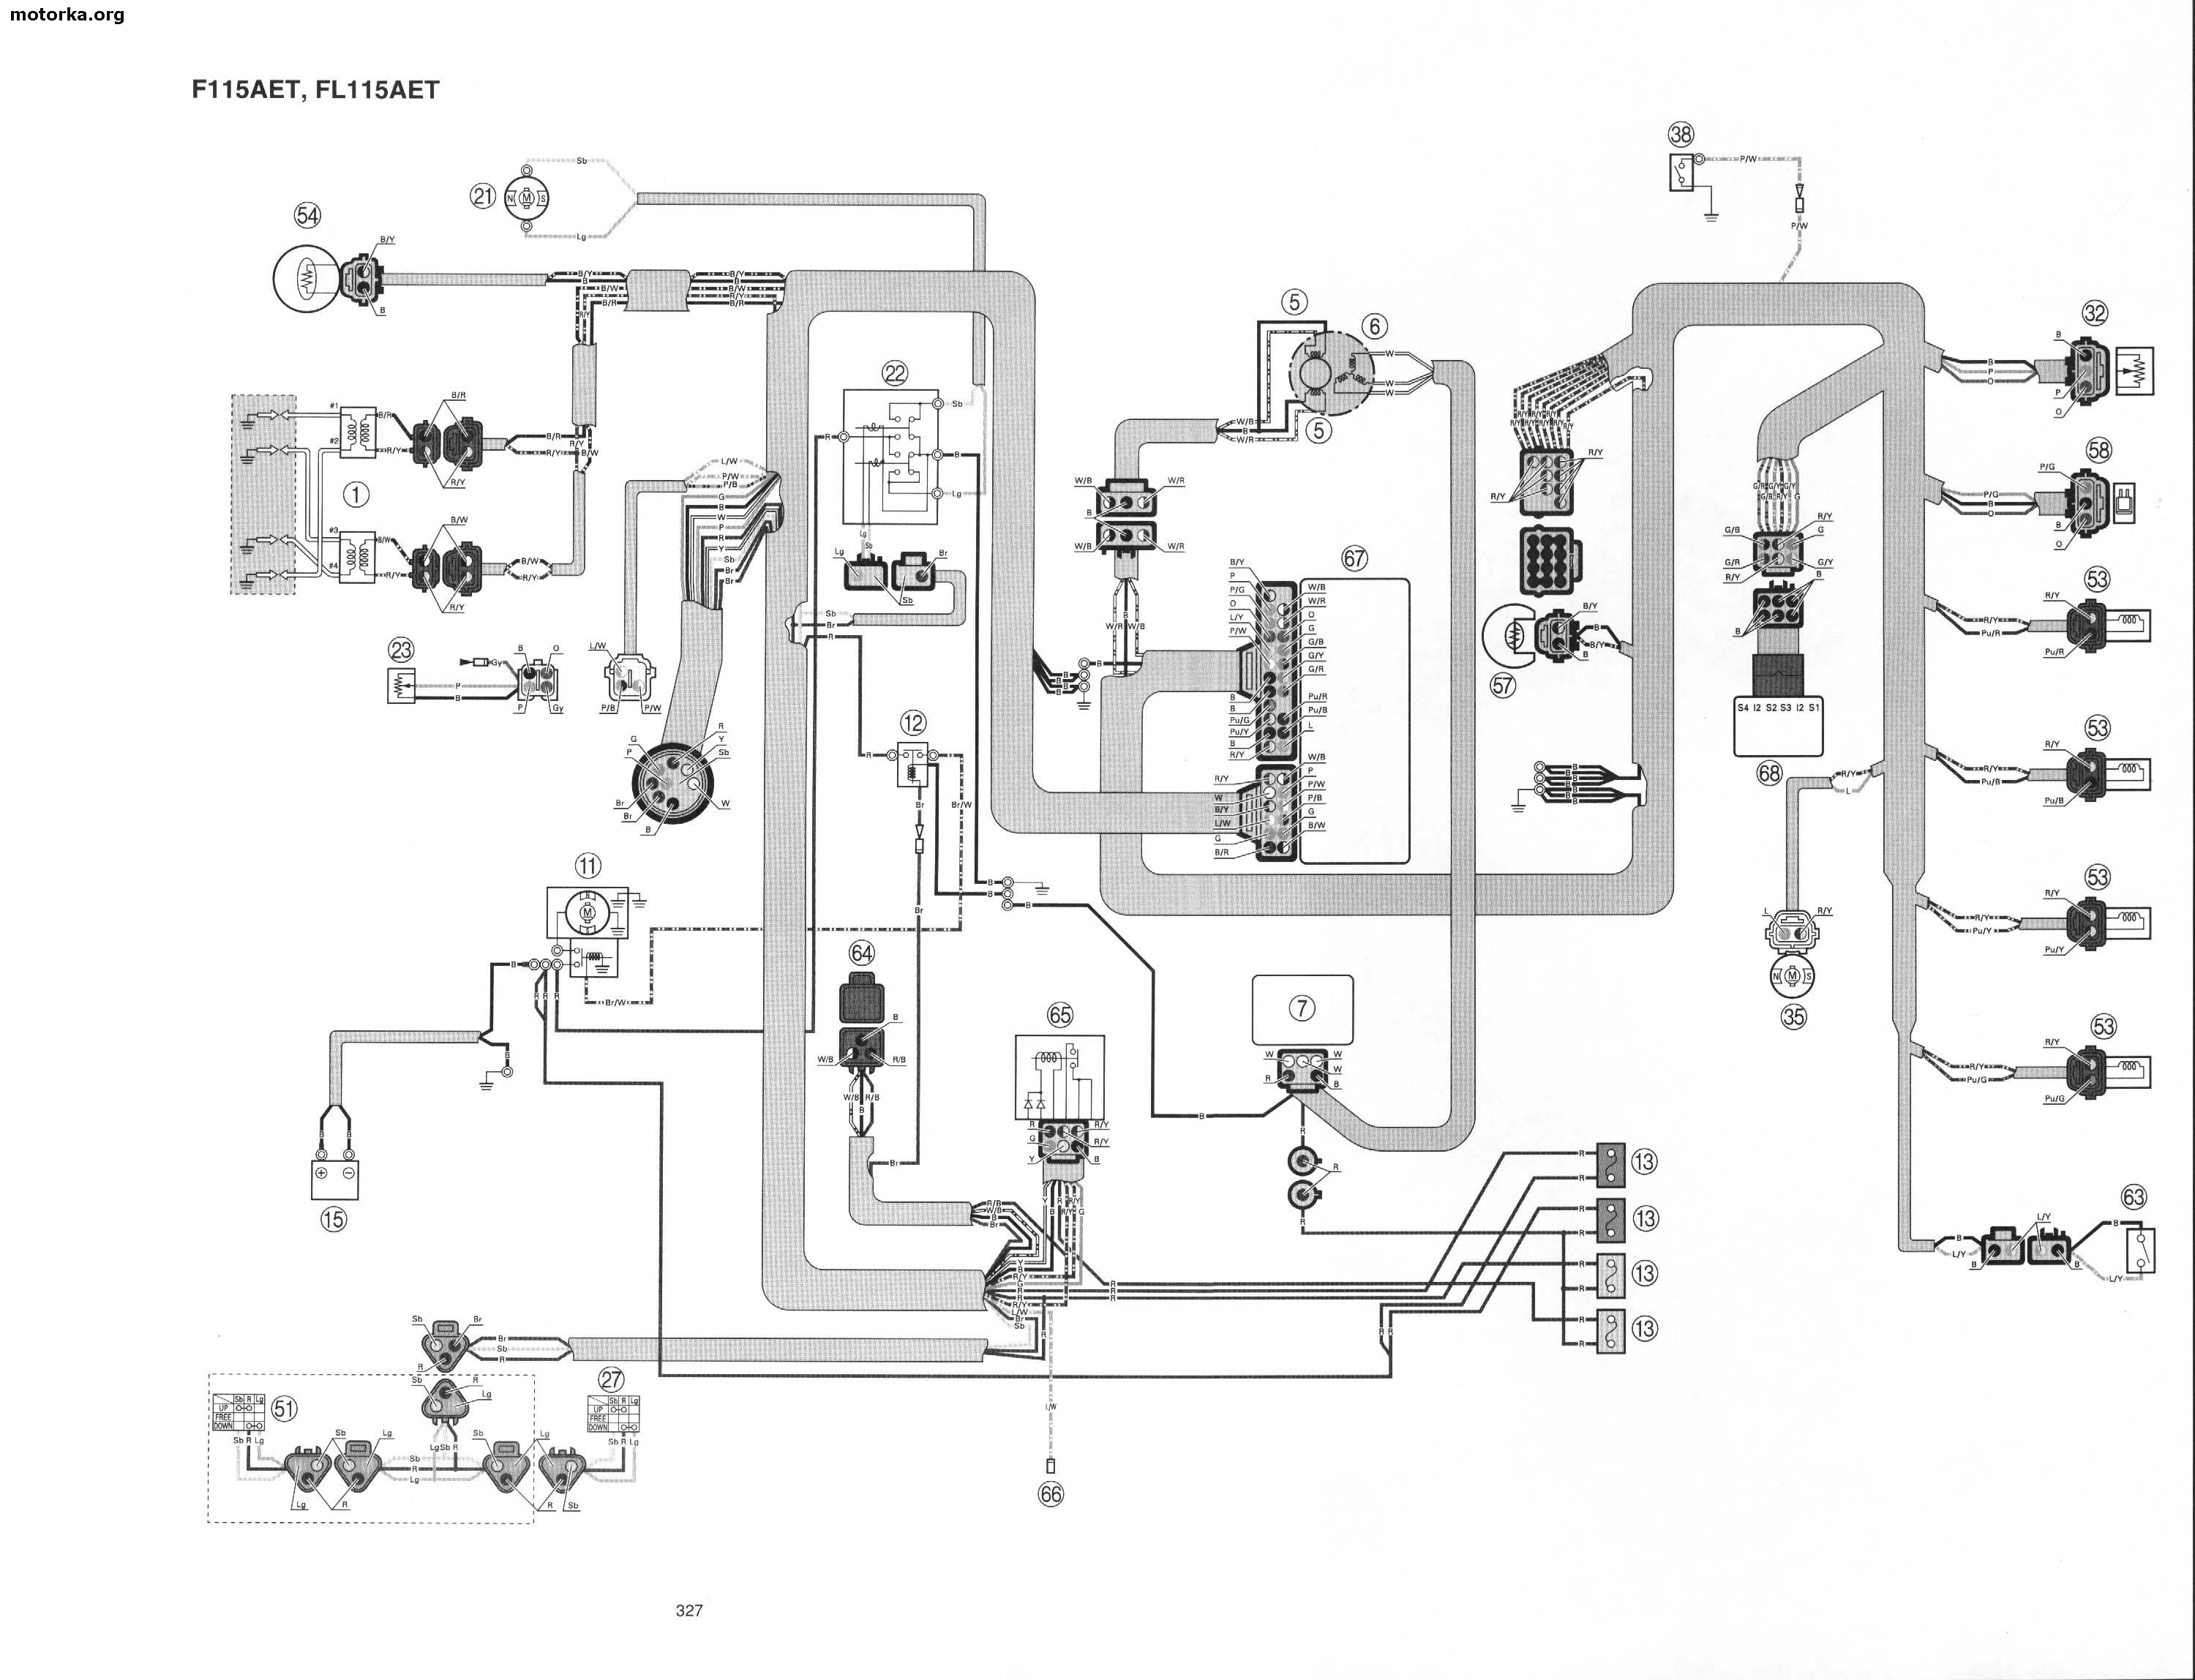 Yamaha 115 Outboard Tachometer Wiring Diagram